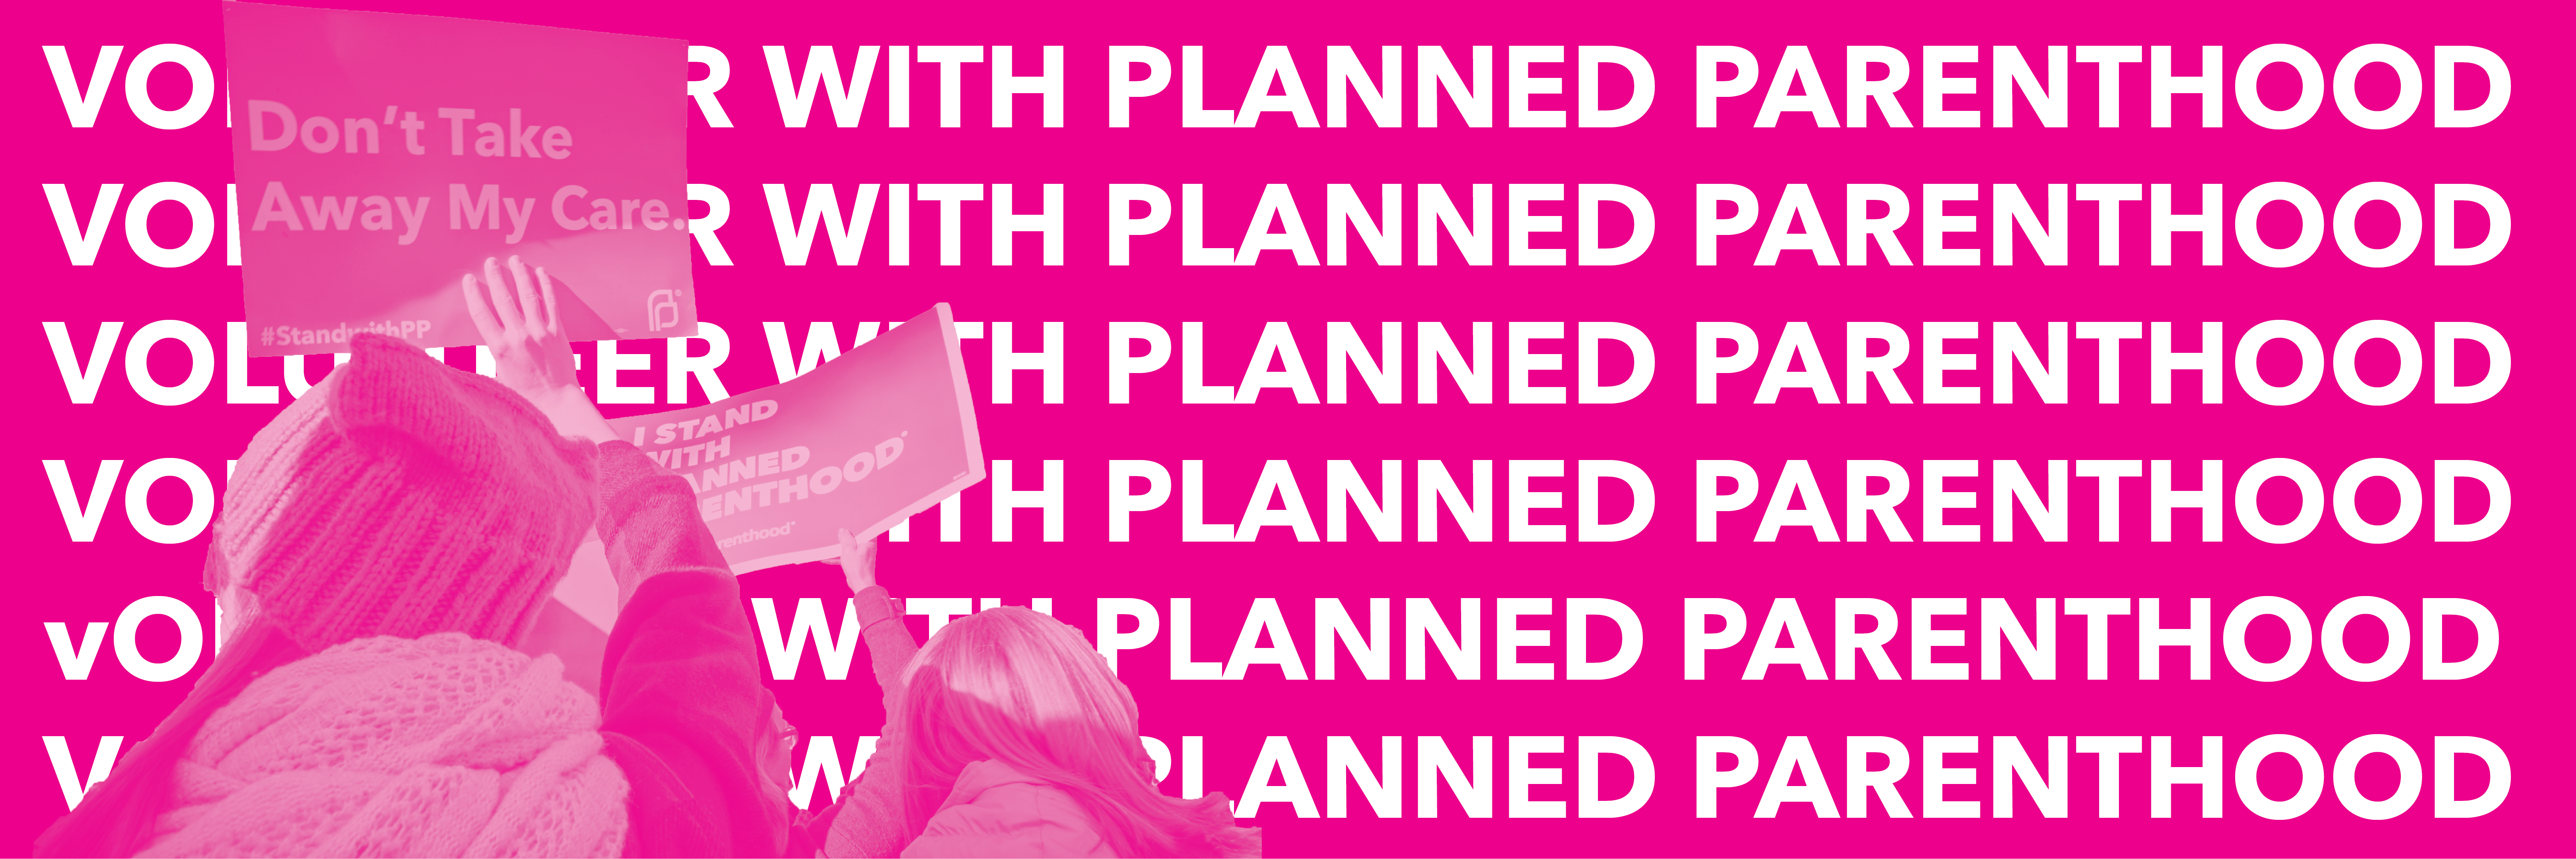 """Pink banner with the text """"VOLUNTEER WITH PLANNED PARENTHOOD"""" repeated. To the left are two volunteers holding up signs that read """"Don't Take Away My Care"""" and """"I Stand with Planned Parenthood"""""""